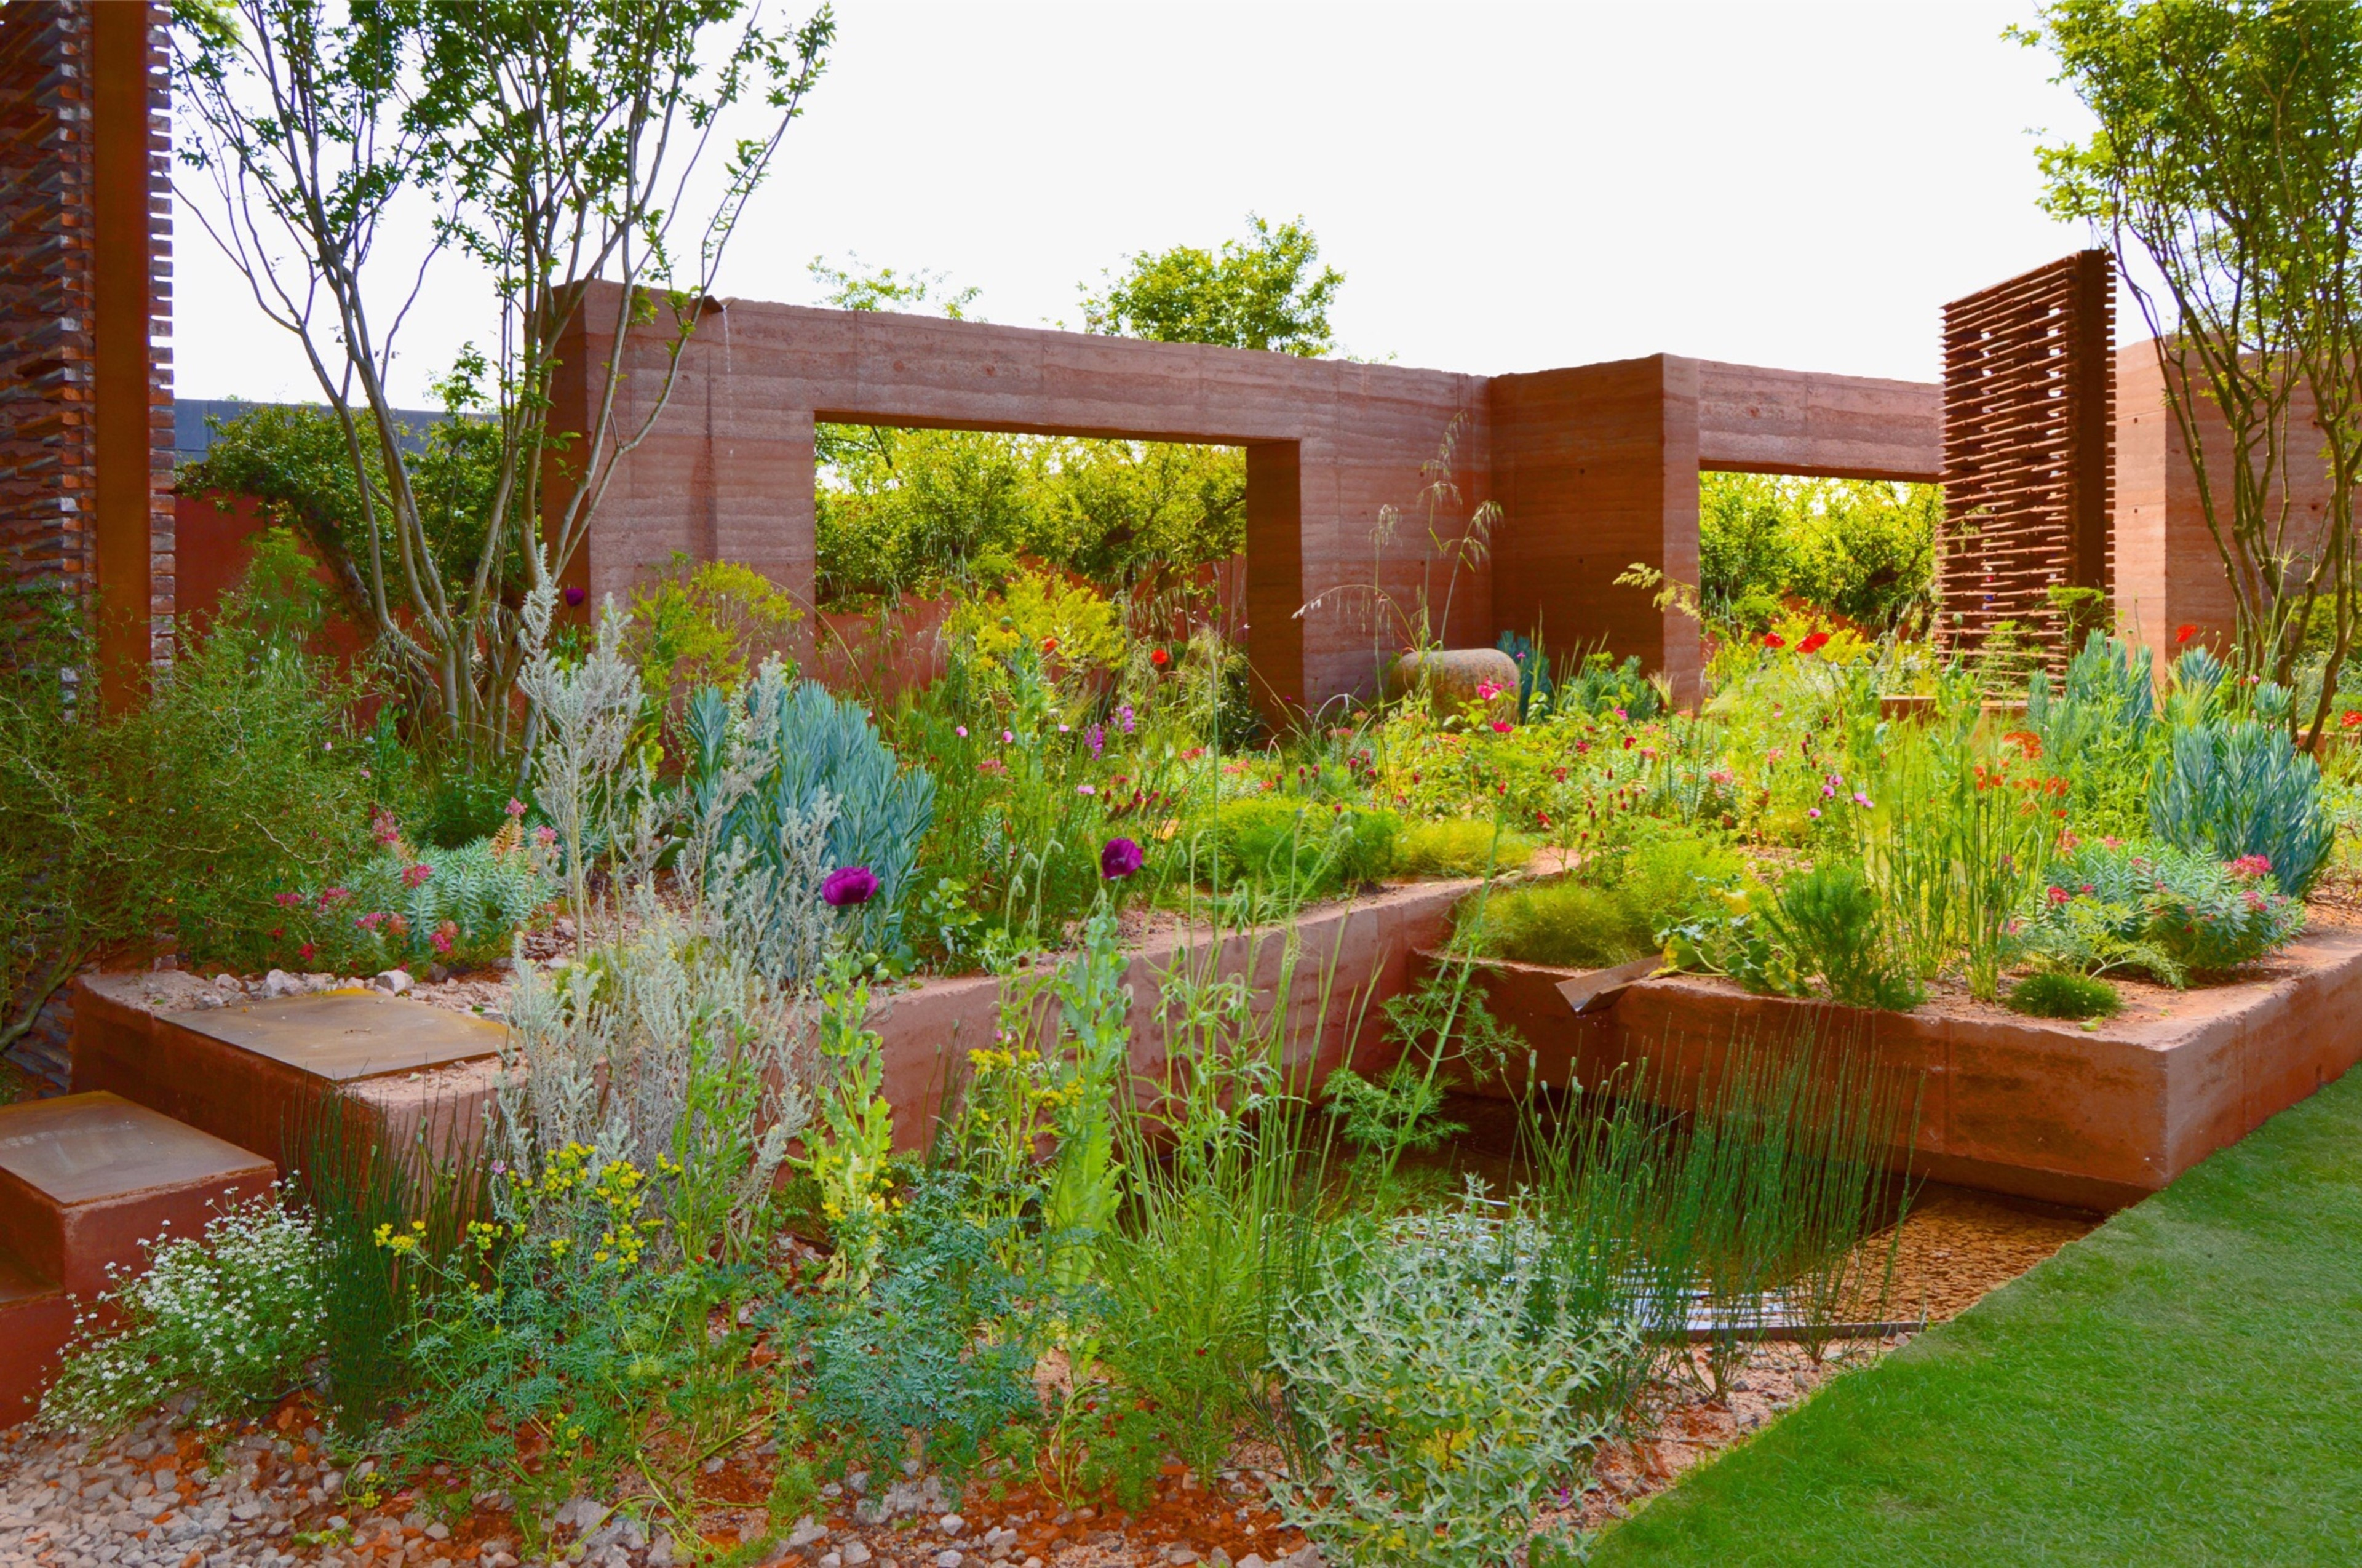 The annual RHS Chelsea Flower Show